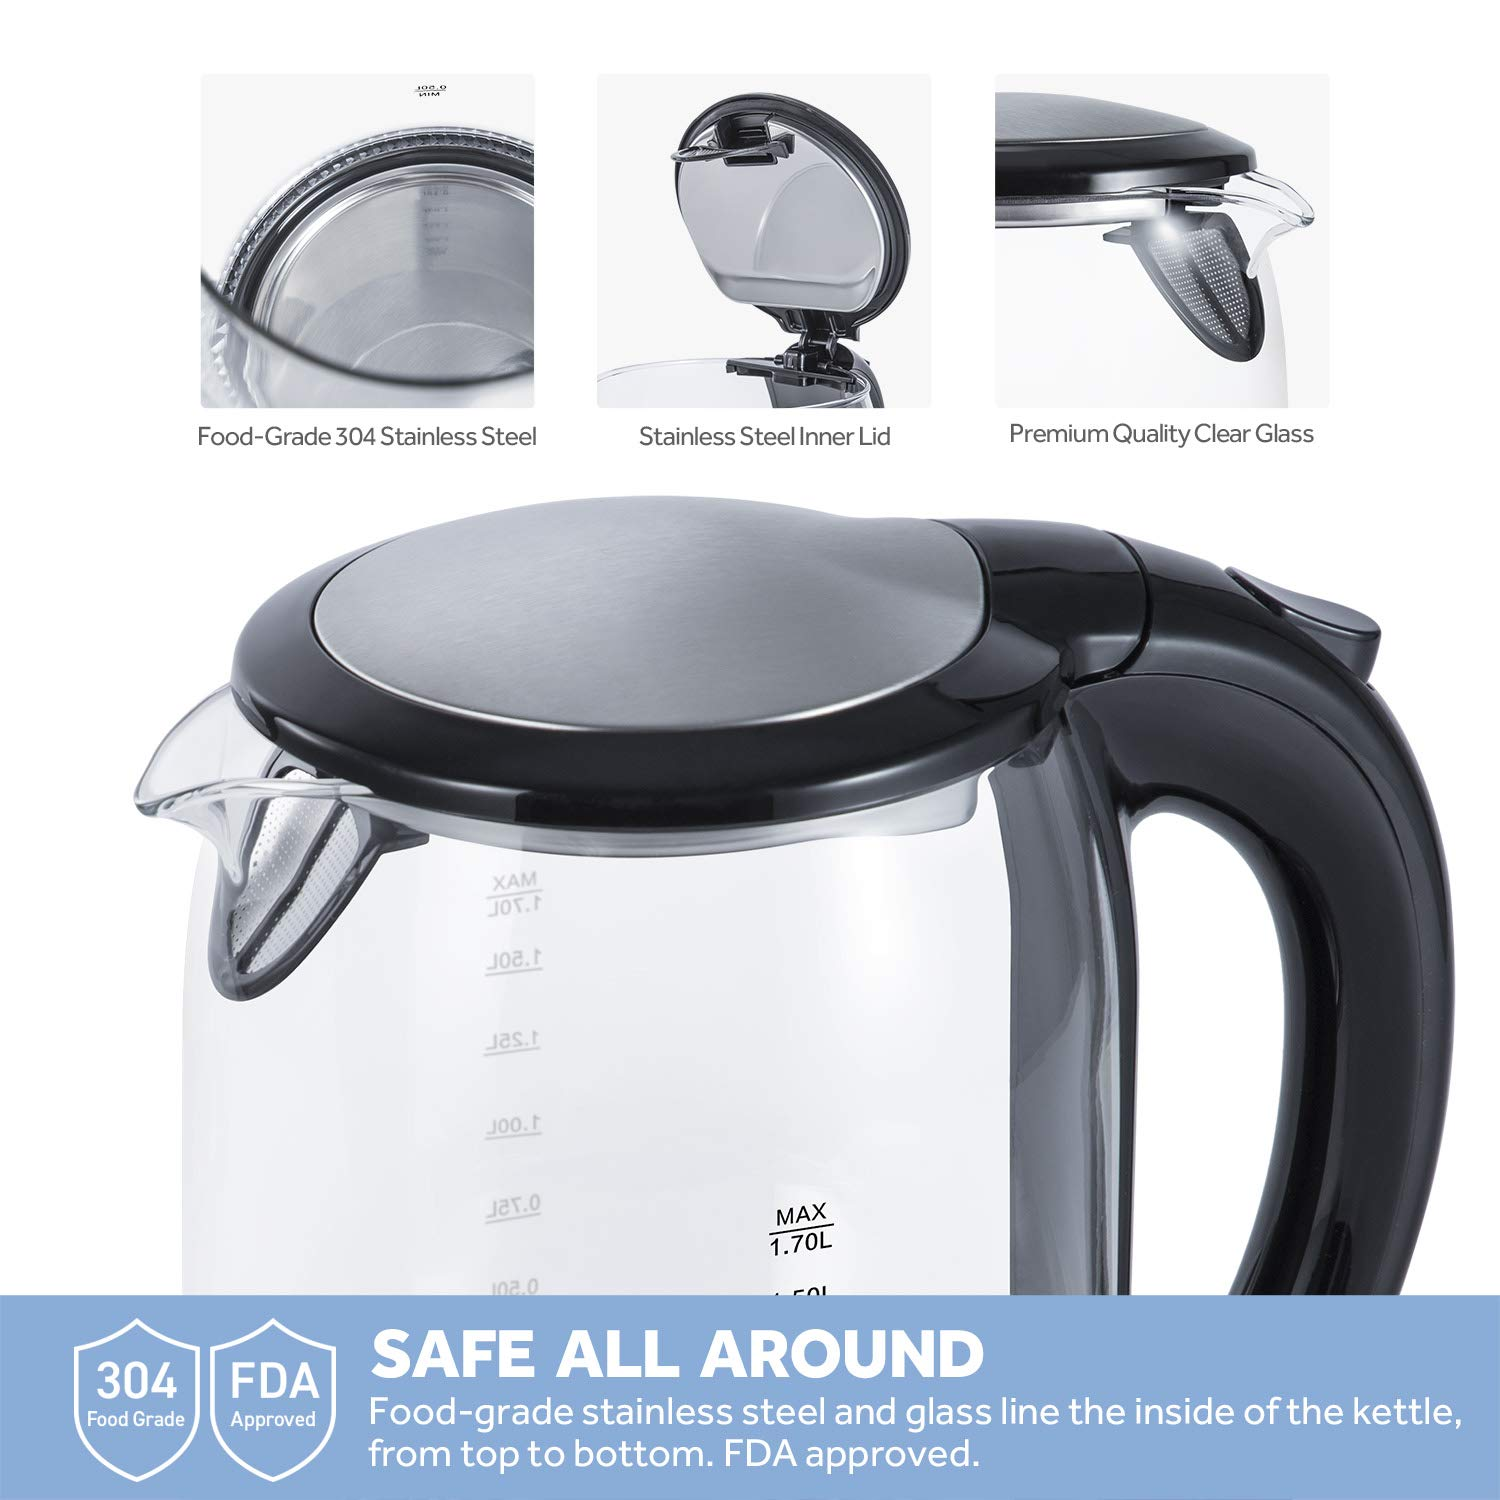 COSORI 1.7L Electric Kettle(BPA-Free), Cordless Glass Boiler,Coffee Pot,Water & Tea Heater with LED Indicator,Auto Shut-Off & Boil-Dry Protection,100% Stainless Steel Inner Lid & Bottom,1500W,CO171-GK by COSORI (Image #2)